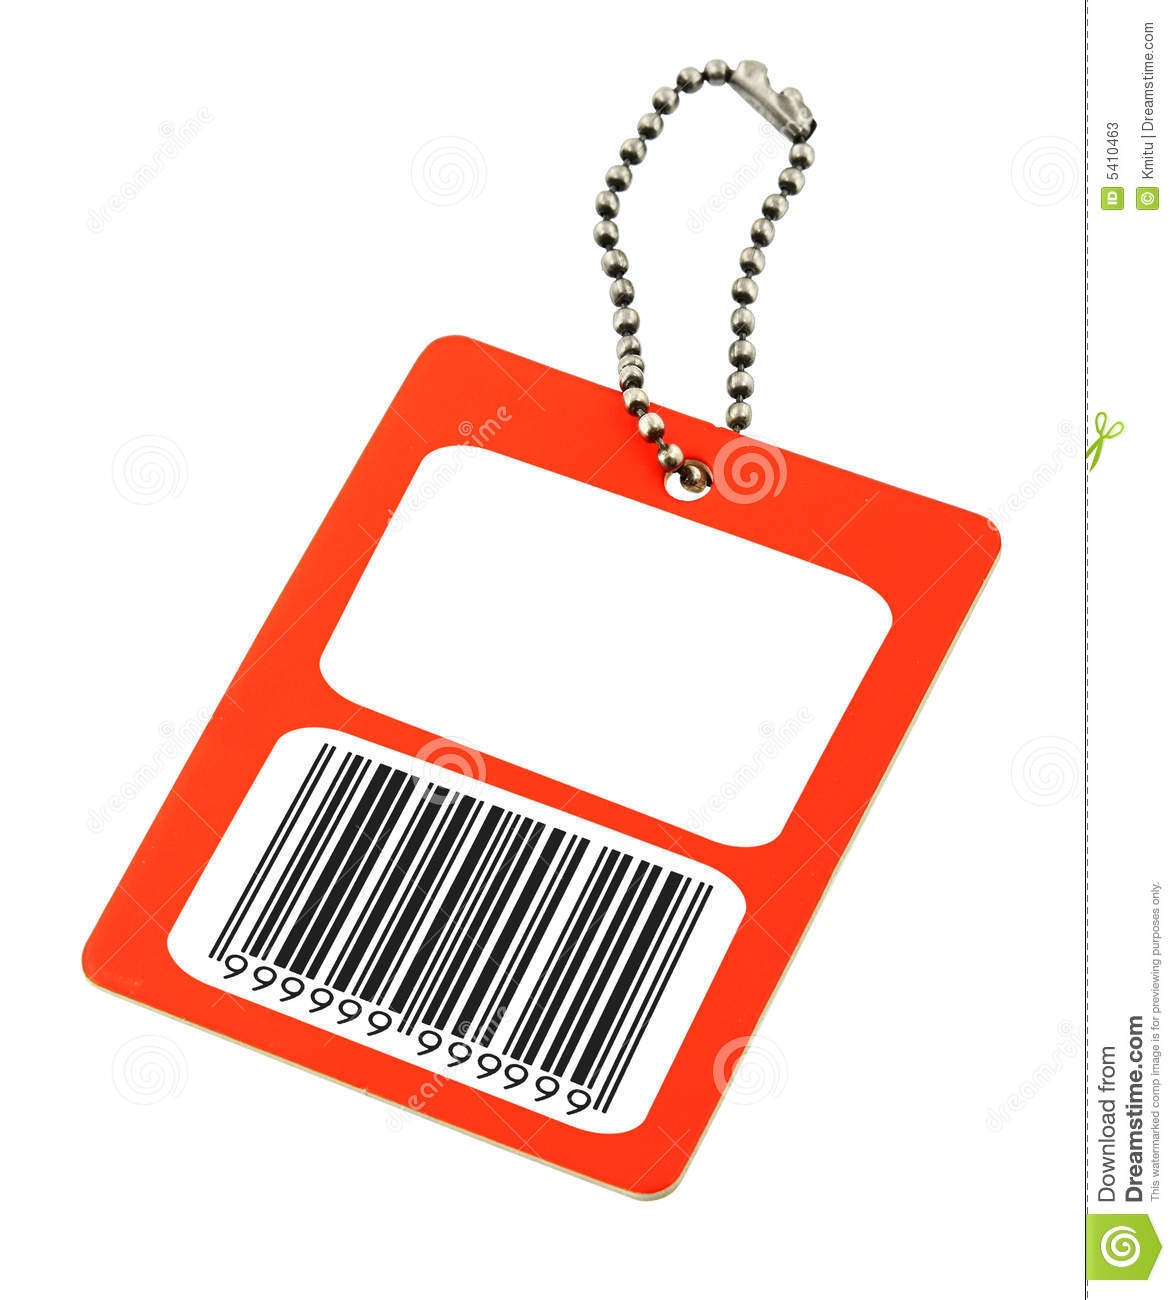 Circuit City: local price match open box item limited stock item, either oop (out of production) or so new that supplies are not regular yet clearance oop product. Best Buy: Frigidaire items have a code on the tag *****